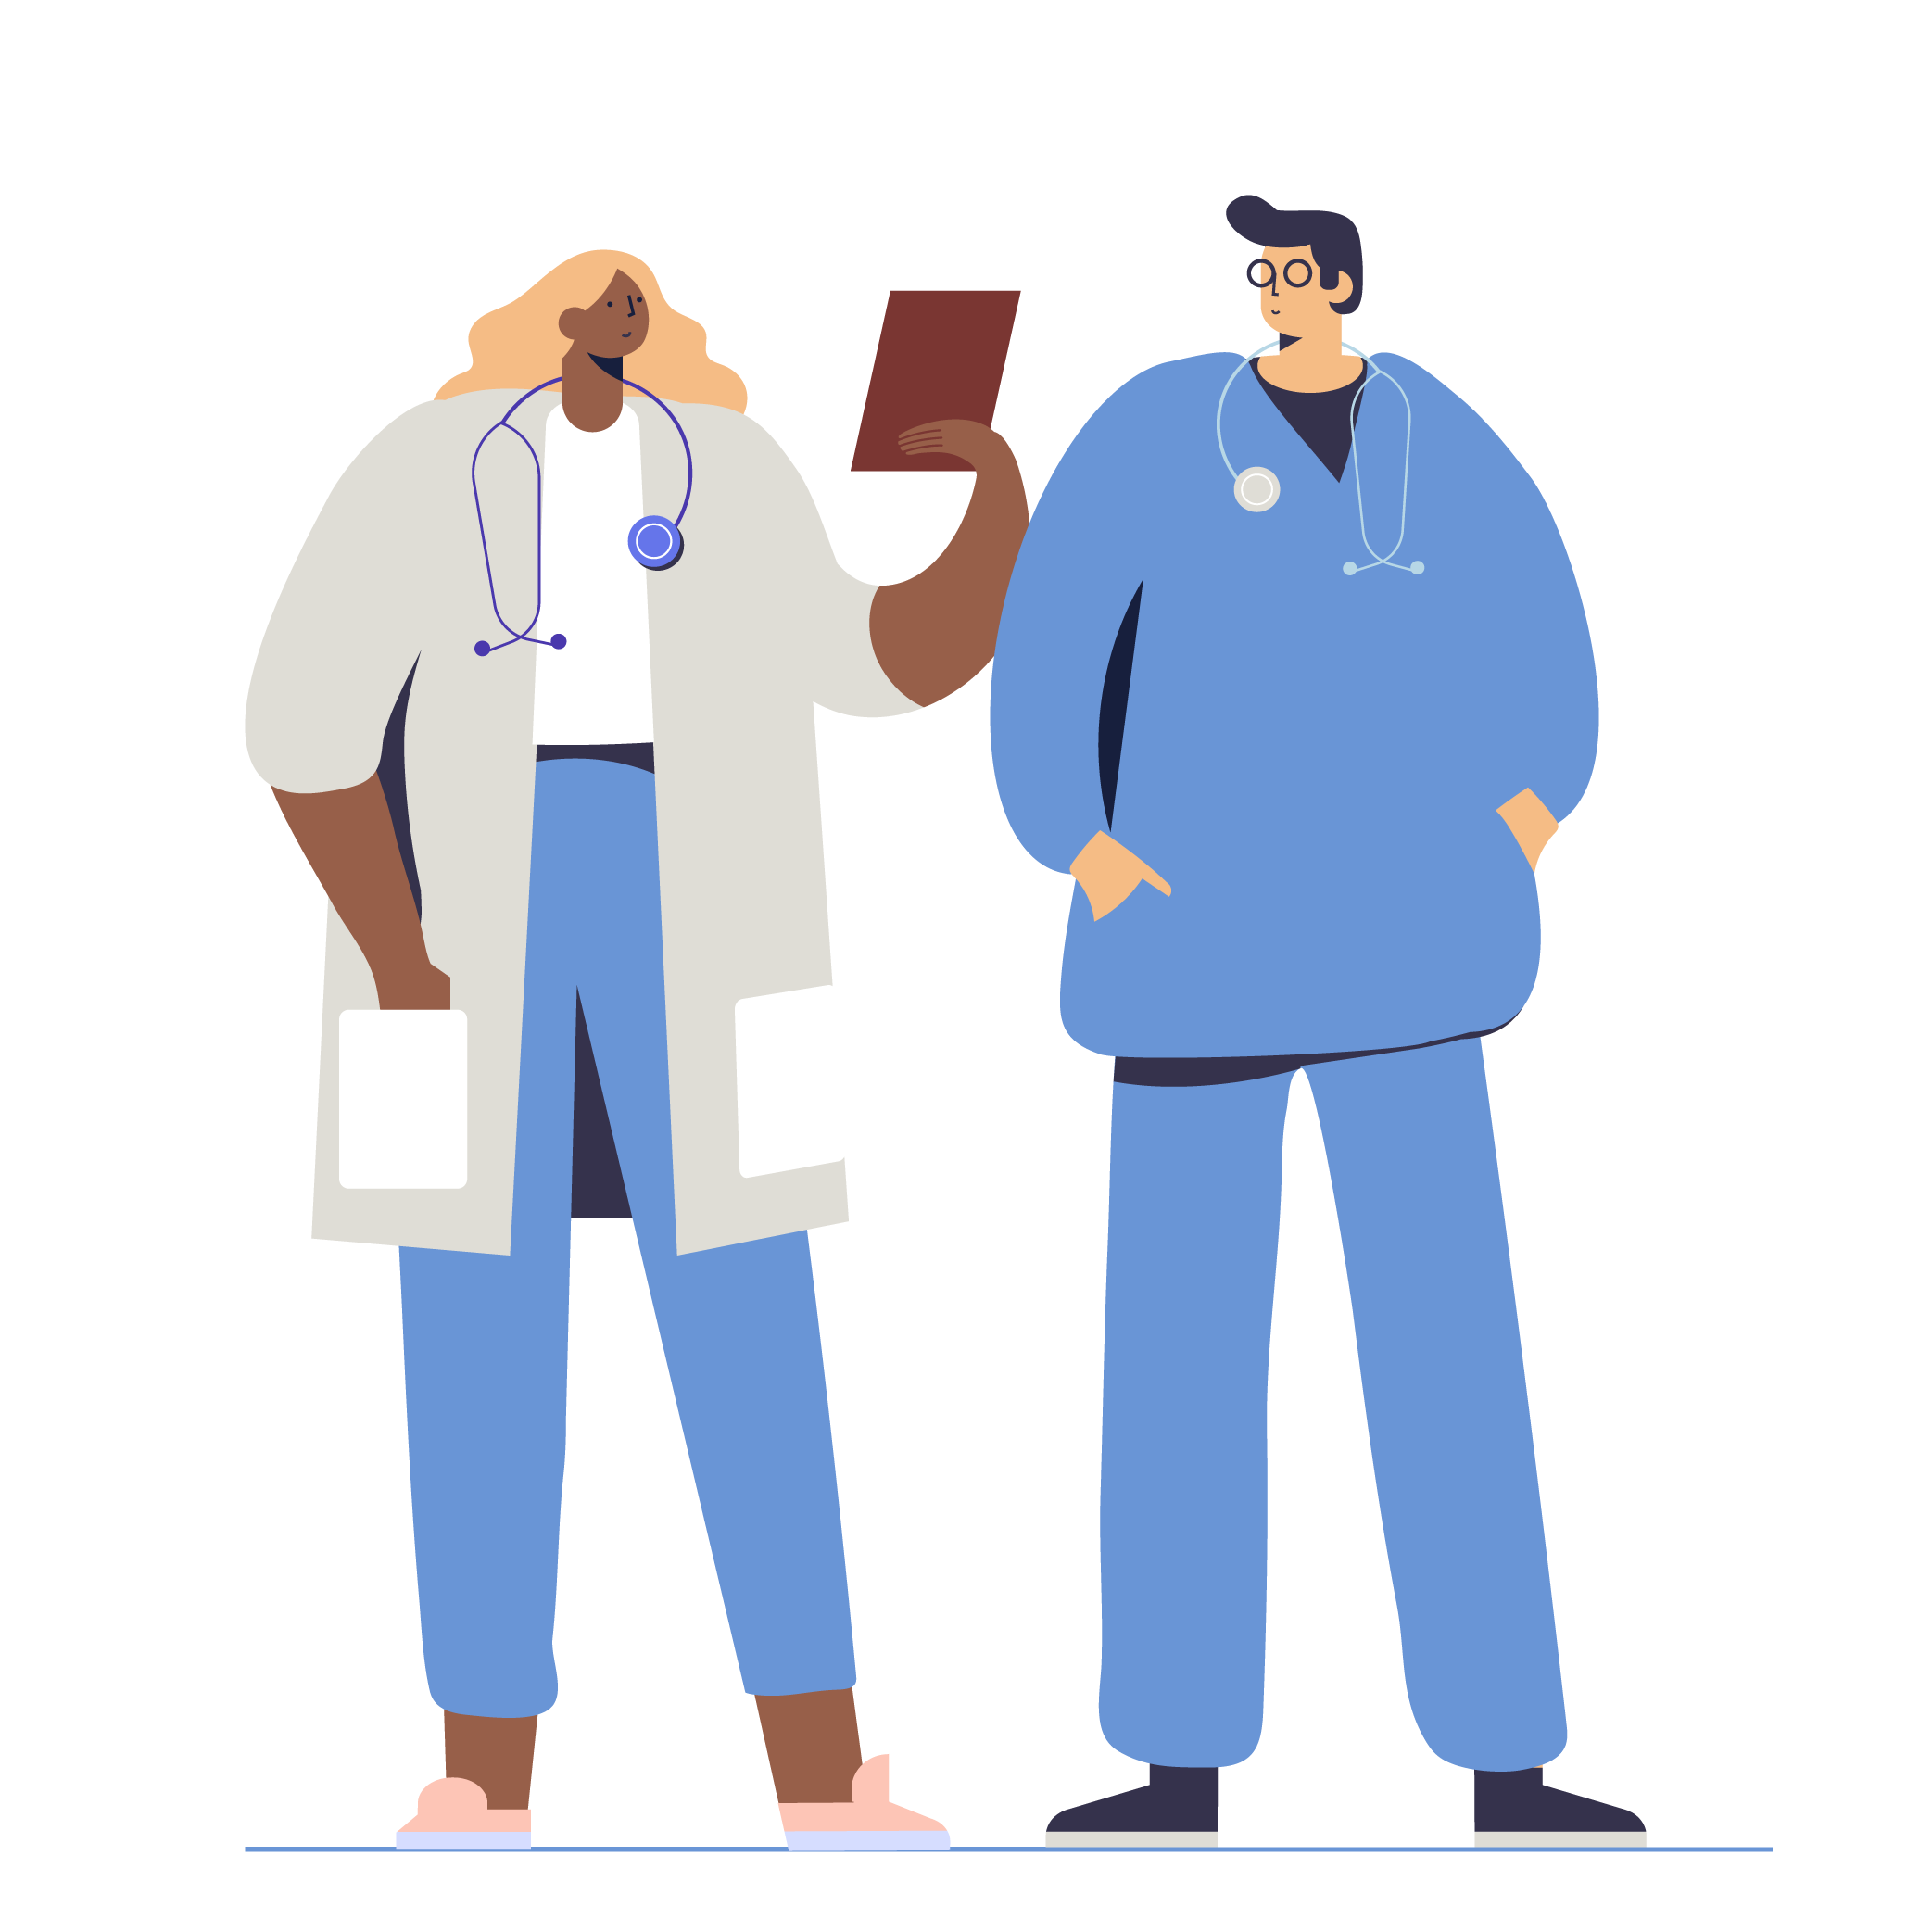 Man and Woman of different races wearing blue medical scrubs and holding clipboard